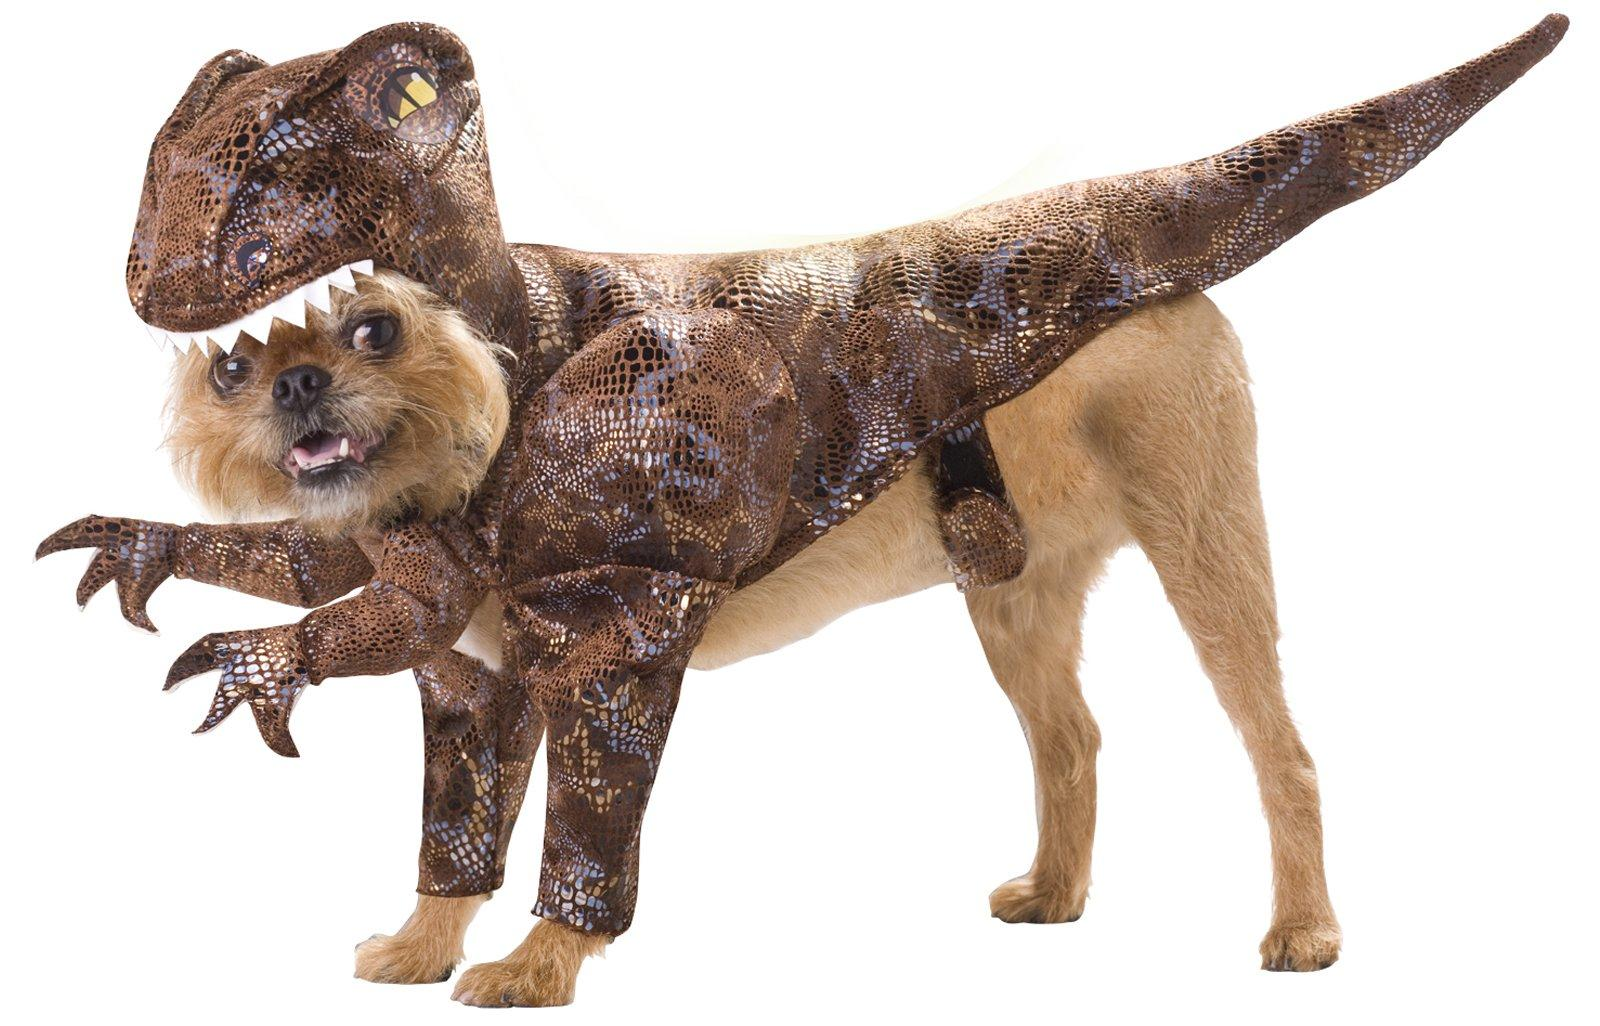 If youu0027re going to be hosting some friends to take in a few shark shows dress up your dog and get a few laughs while youu0027re at it.  sc 1 st  BuyCostumes.com & Top 10 Tuesdays: Dog Costumes - Halloween Costume Ideas